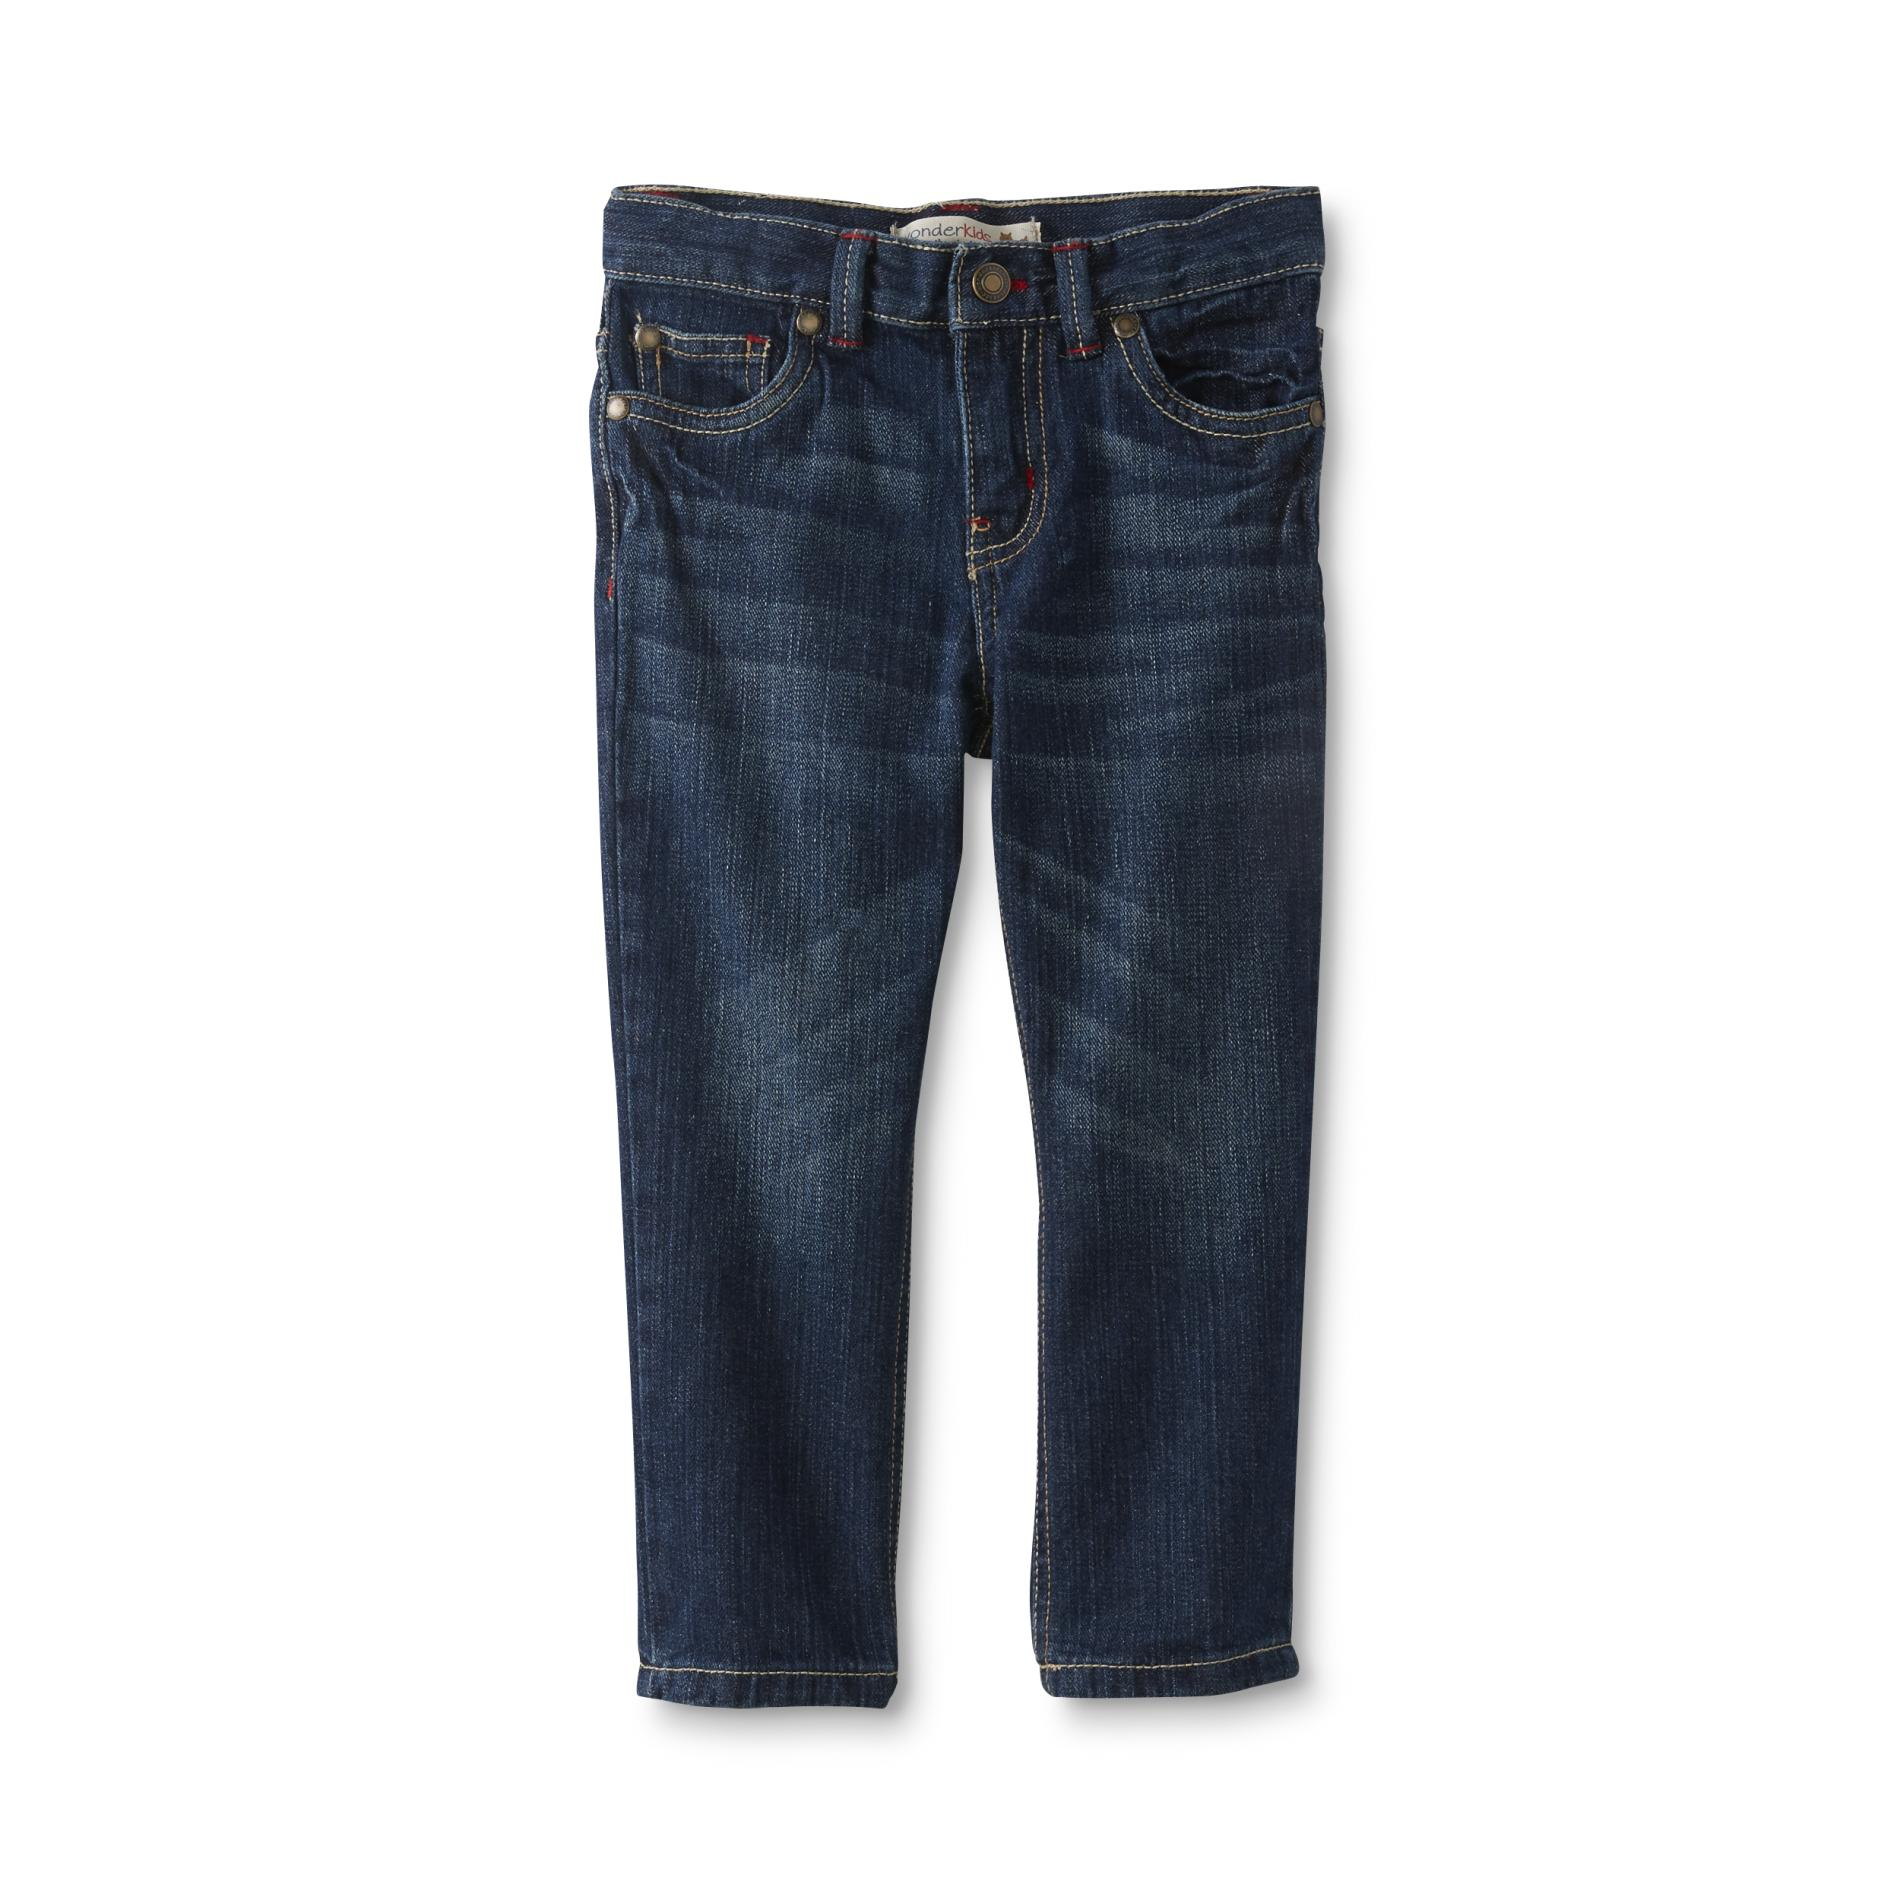 Infant & Toddler Boy's Relaxed Jeans